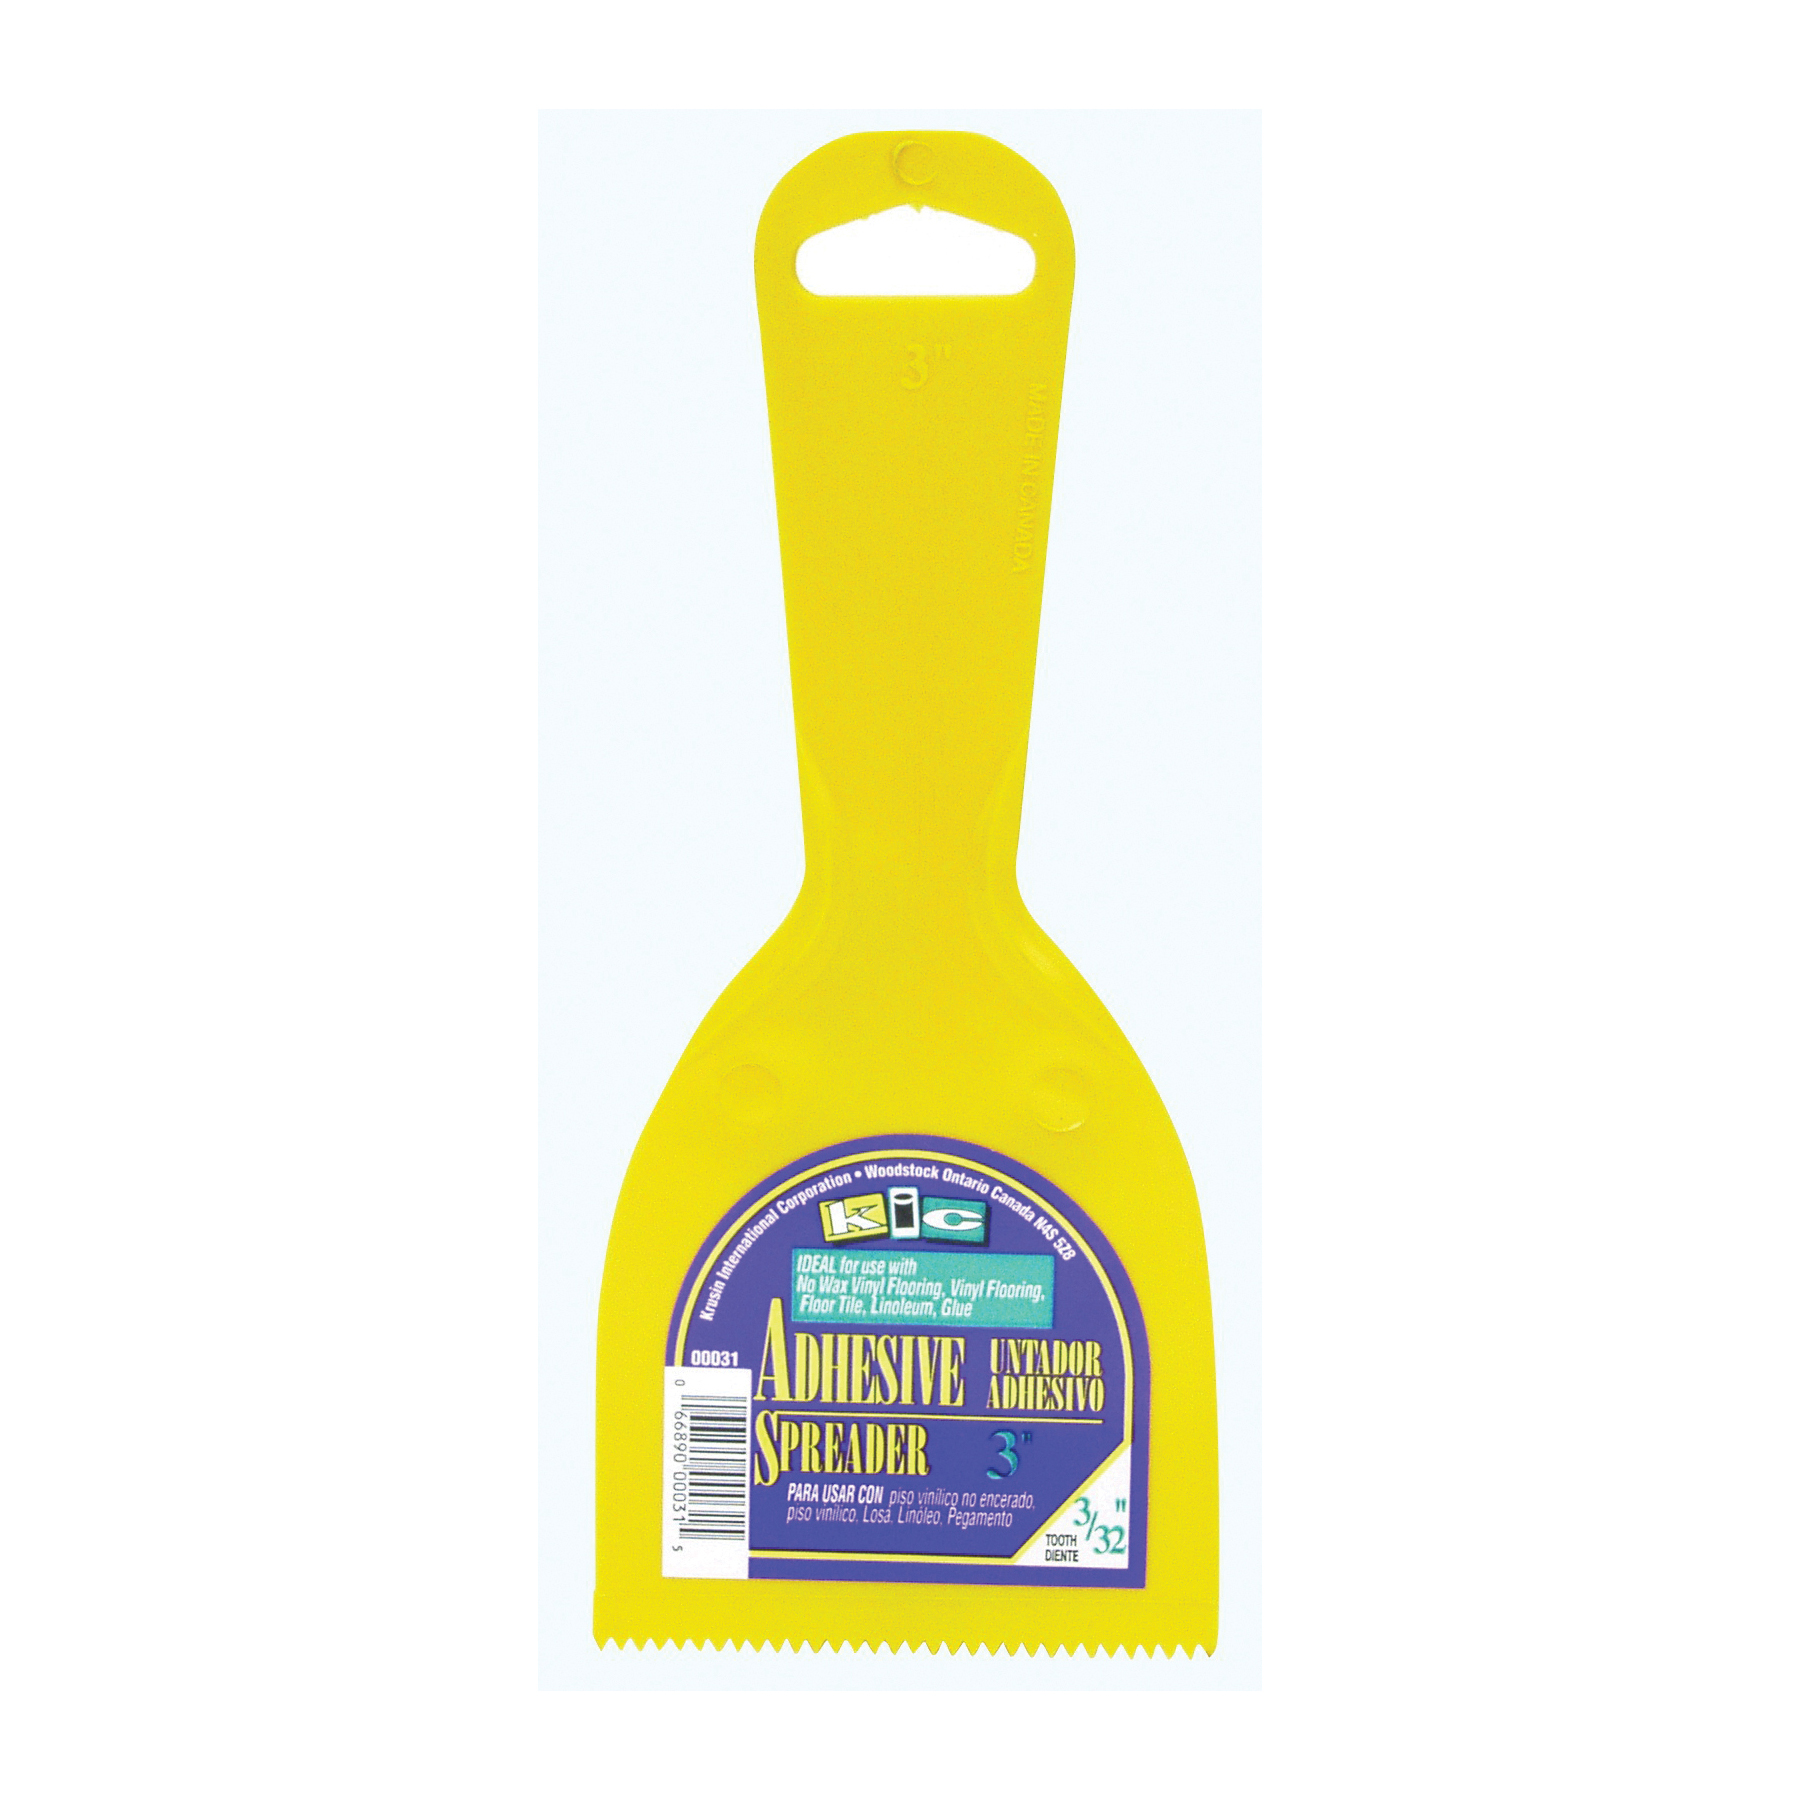 Picture of Homax 40-00031 Adhesive Spreader Knife, Notched Blade, Polystyrene Blade, Polystyrene Handle